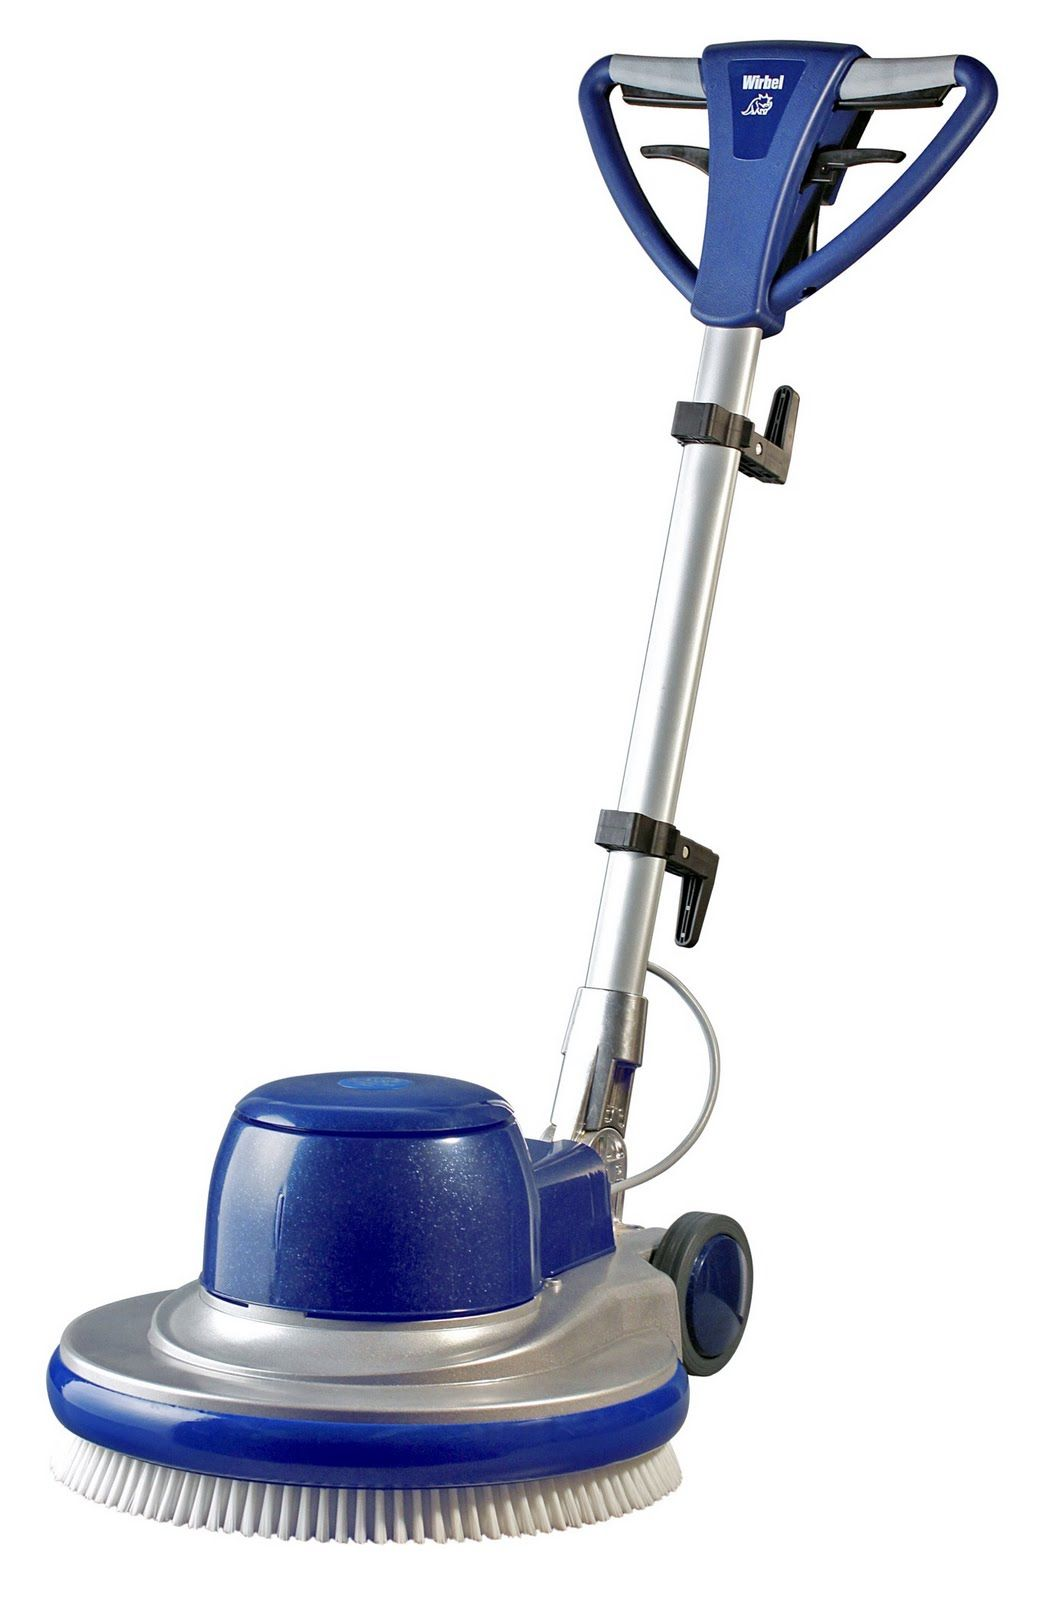 When Floor Scrubbing Machines Became More Available To Many Types Of - How to use a floor scrubber machine